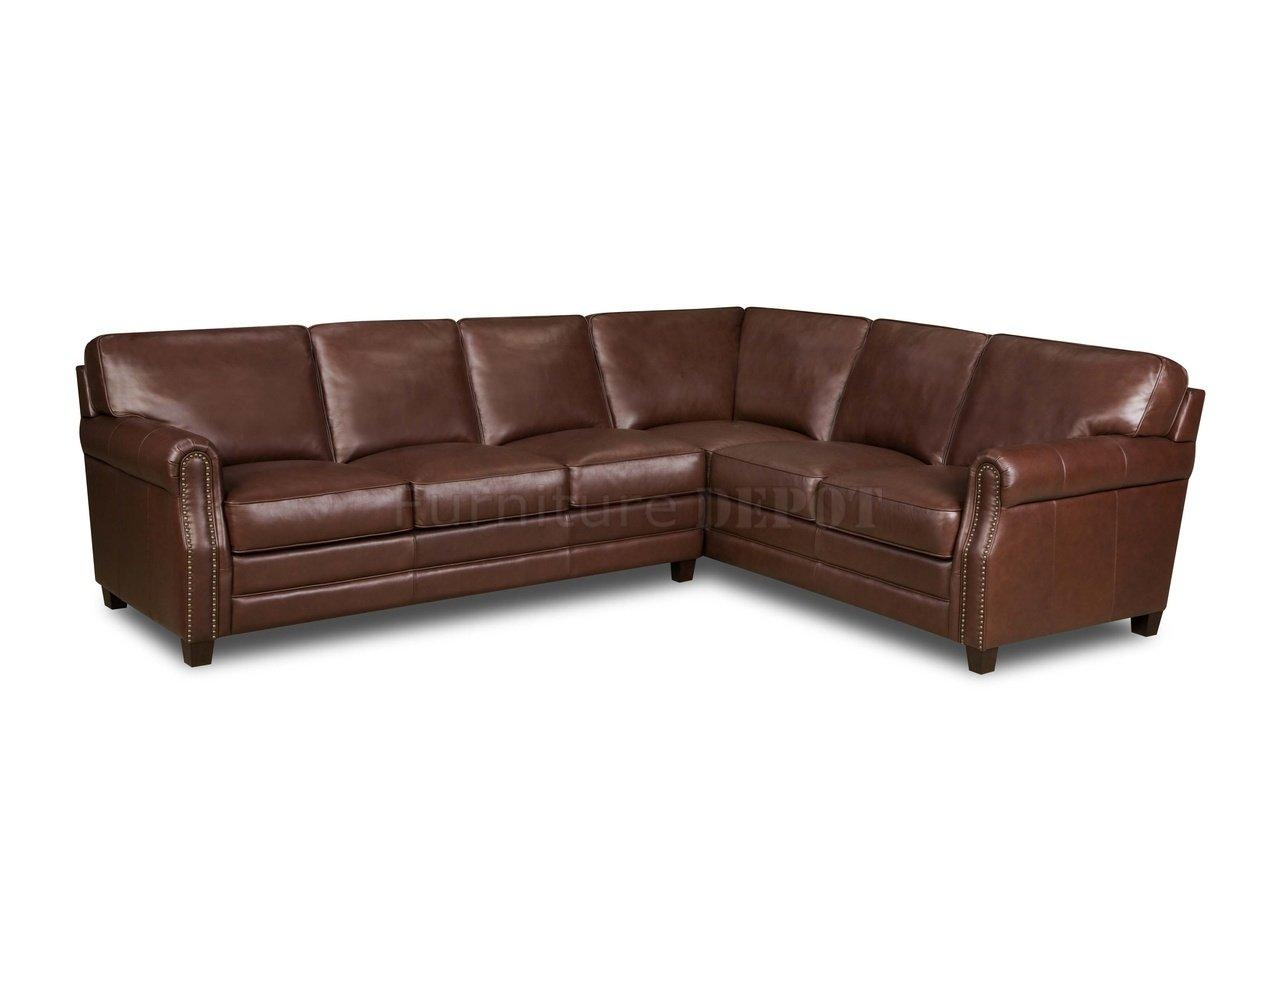 Traditional Sectional Sofa: Beautiful Pictures, Photos Of Intended For Traditional Sectional Sofas (View 18 of 20)